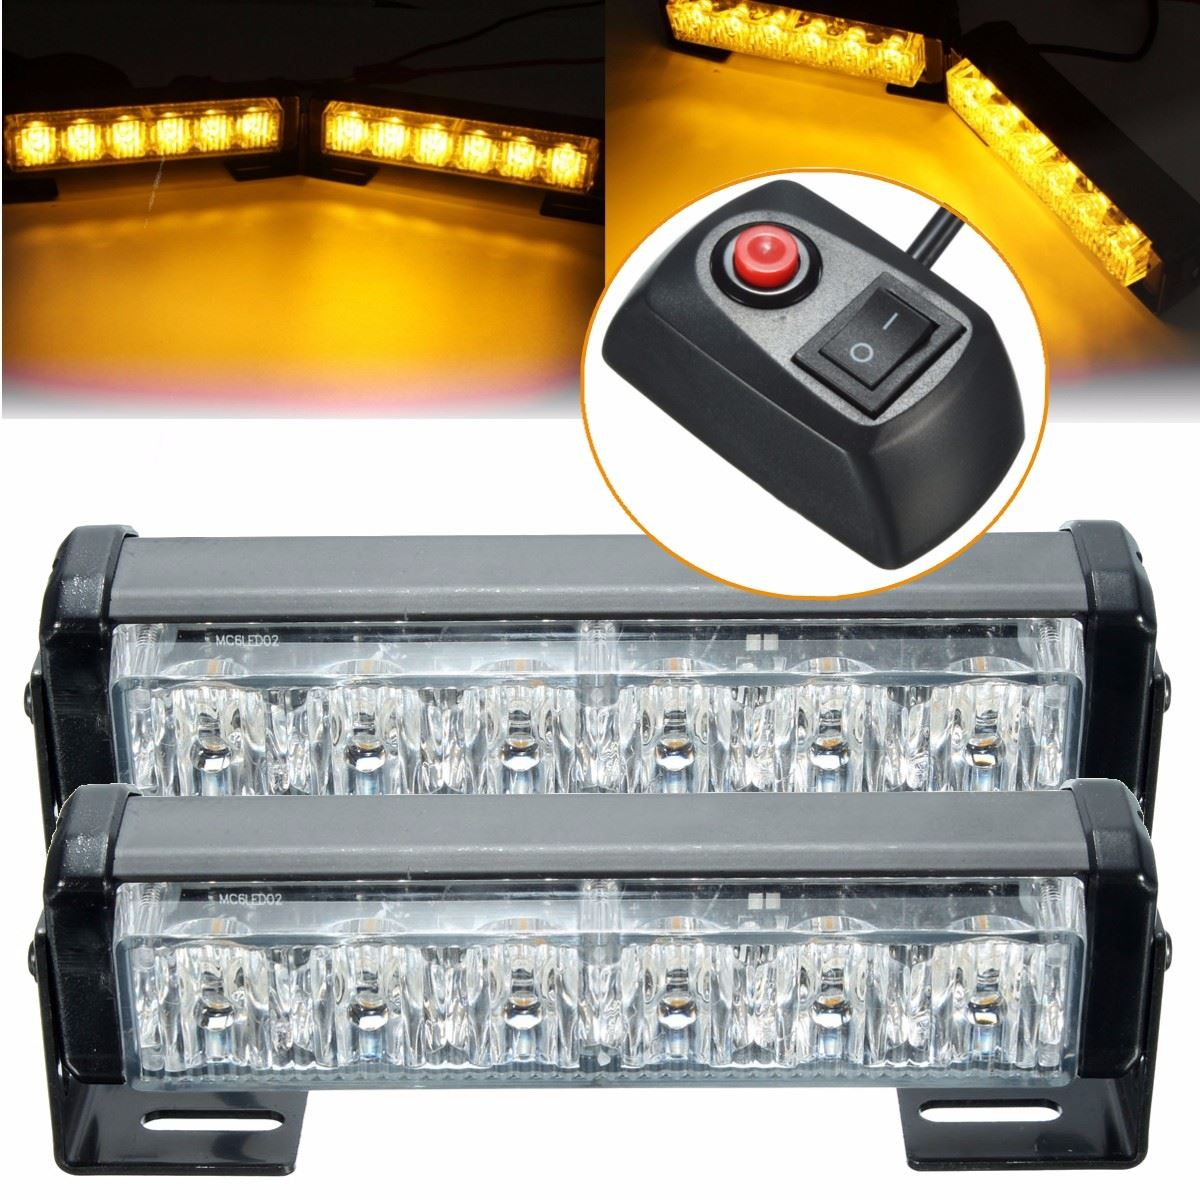 2x 6 LED 12V Amber Car Flashing Hazard Light Strobe Flash Lamp Switch Harness Car Flash Signal Emergency Warning Light fendi fan di fendi blossom